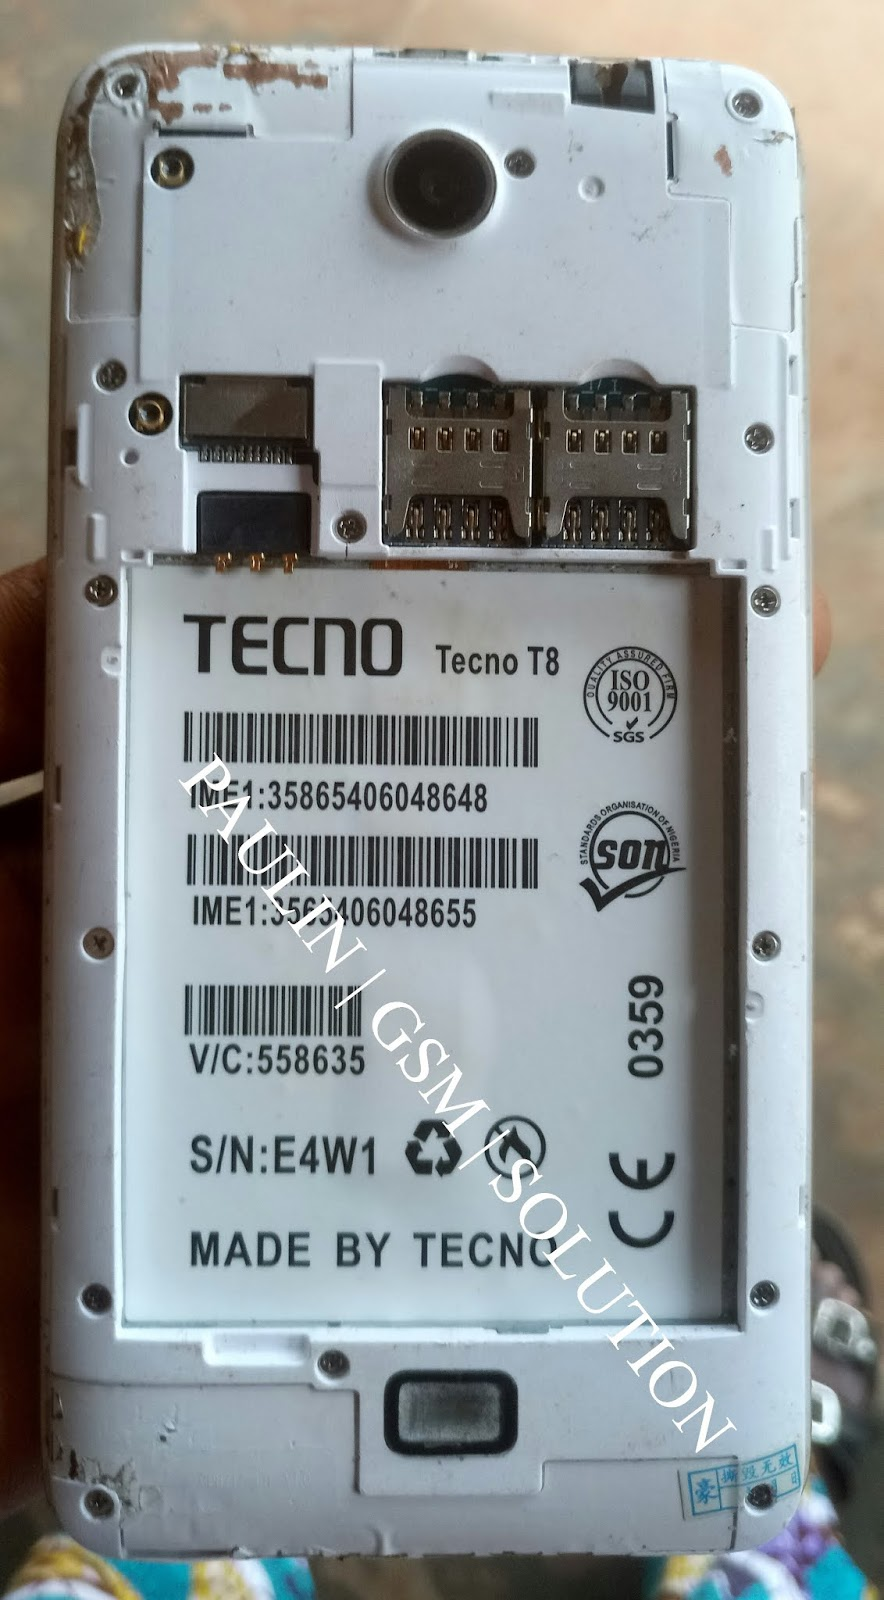 TECNO CAMON T8 MT6735 ANDROID 6 1 STOCK ROM FIRMWARE 10000% TESTED